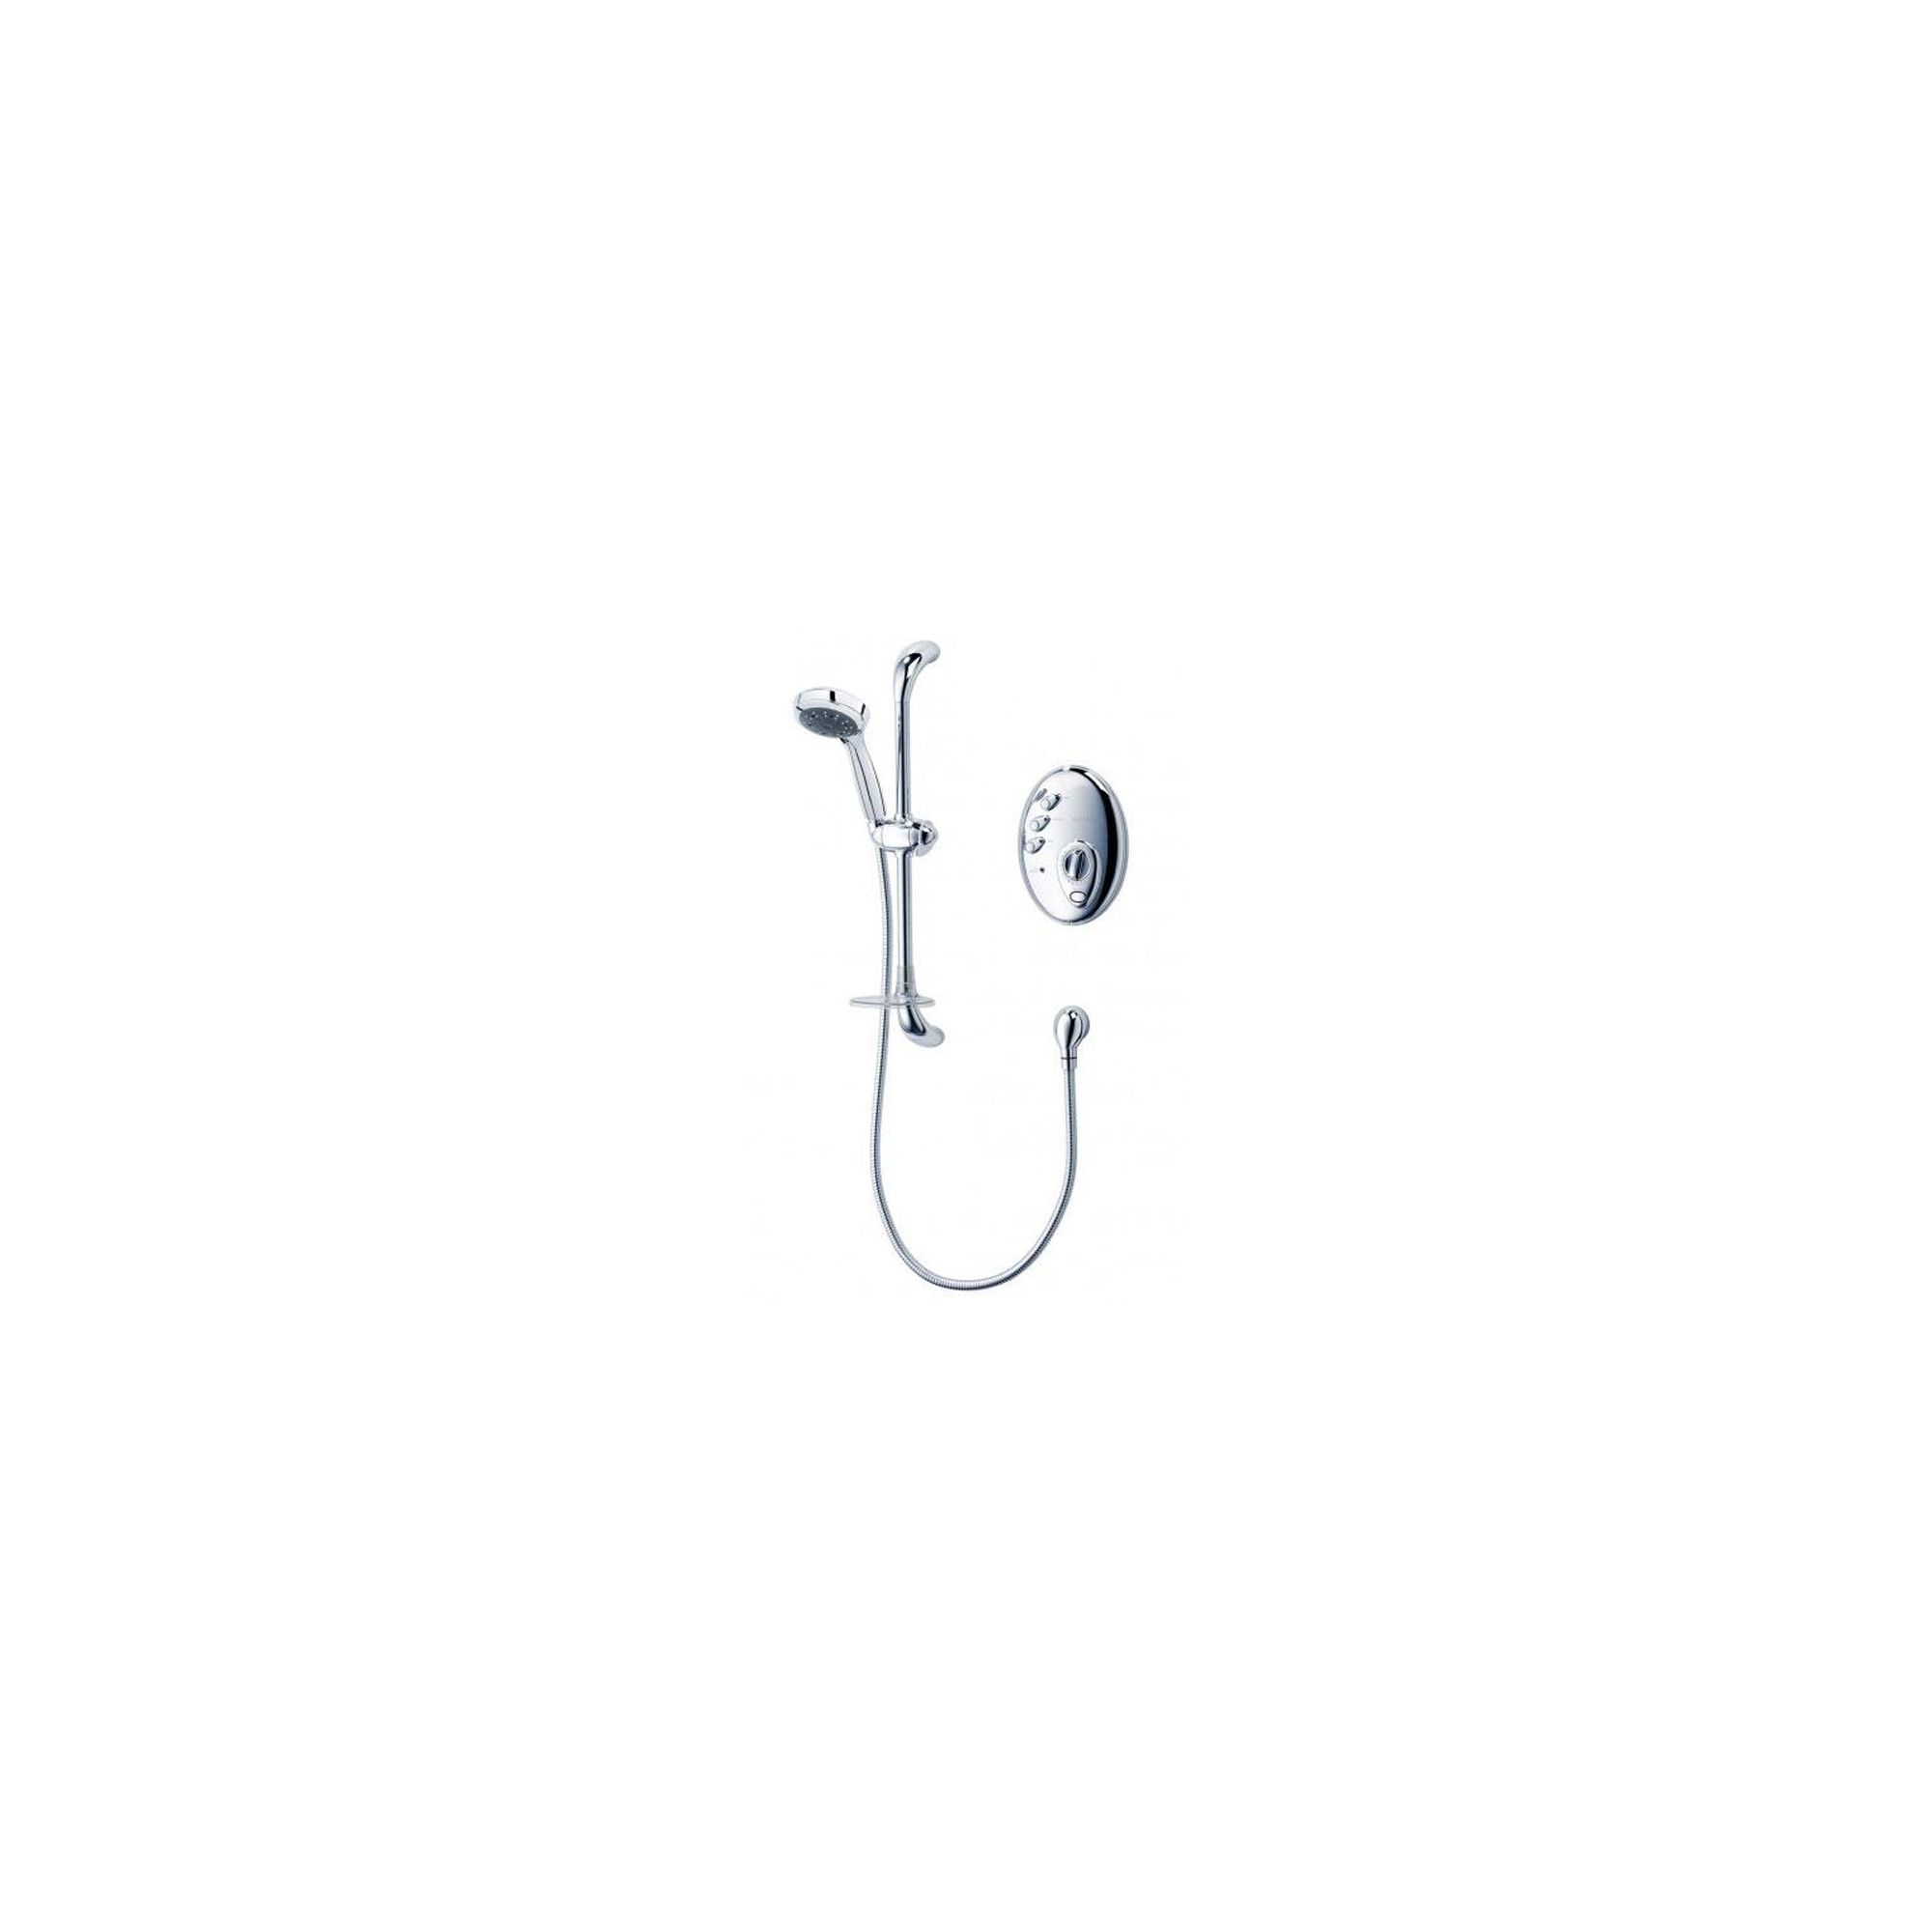 Triton Aspirante Digital Remote Electric Shower Chrome 8.5 kW at Tesco Direct